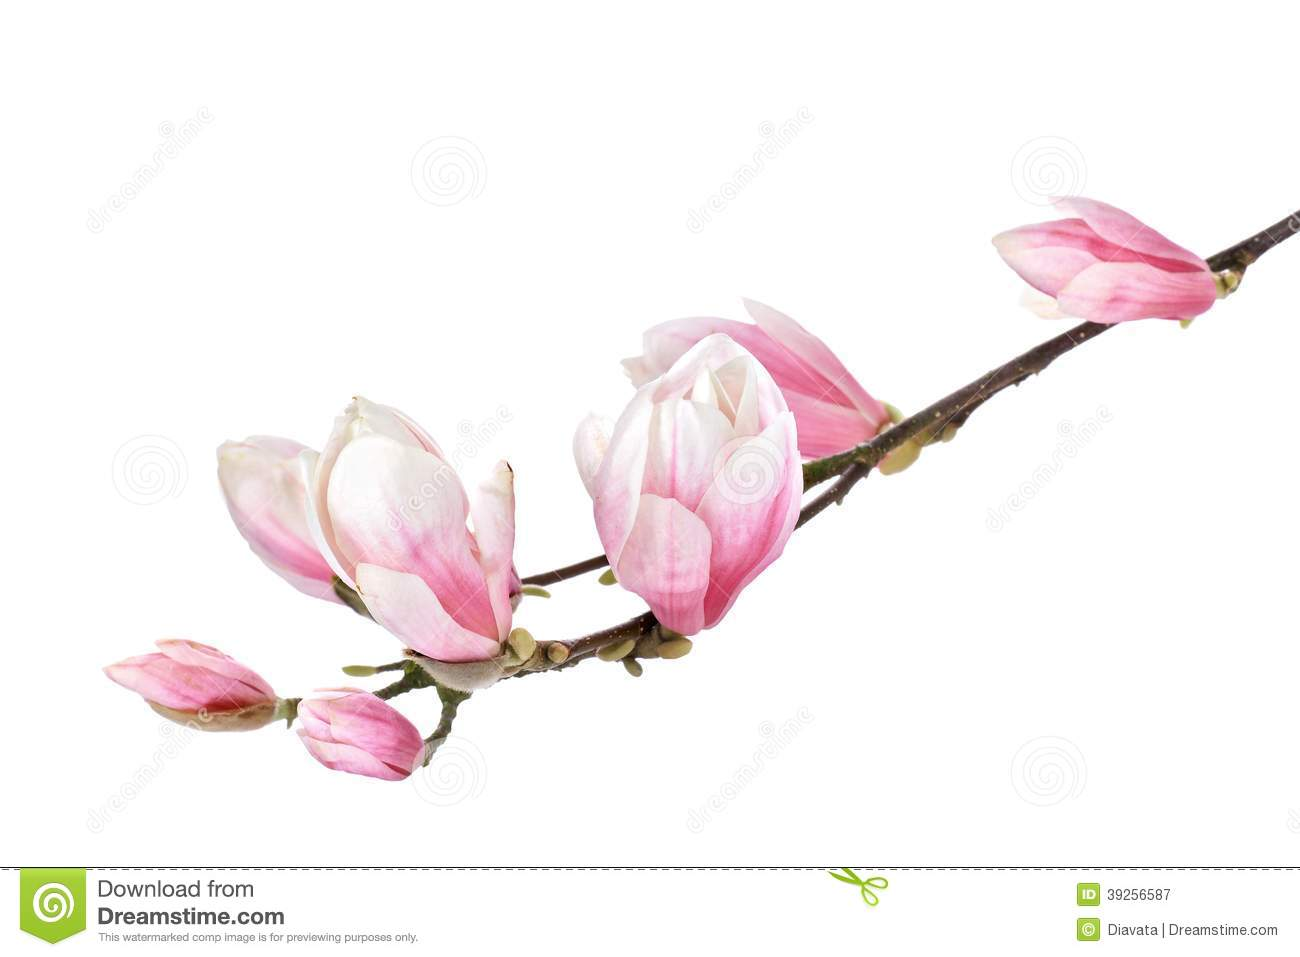 Magnolia Flower Branch Stock Photo - Image: 39256587